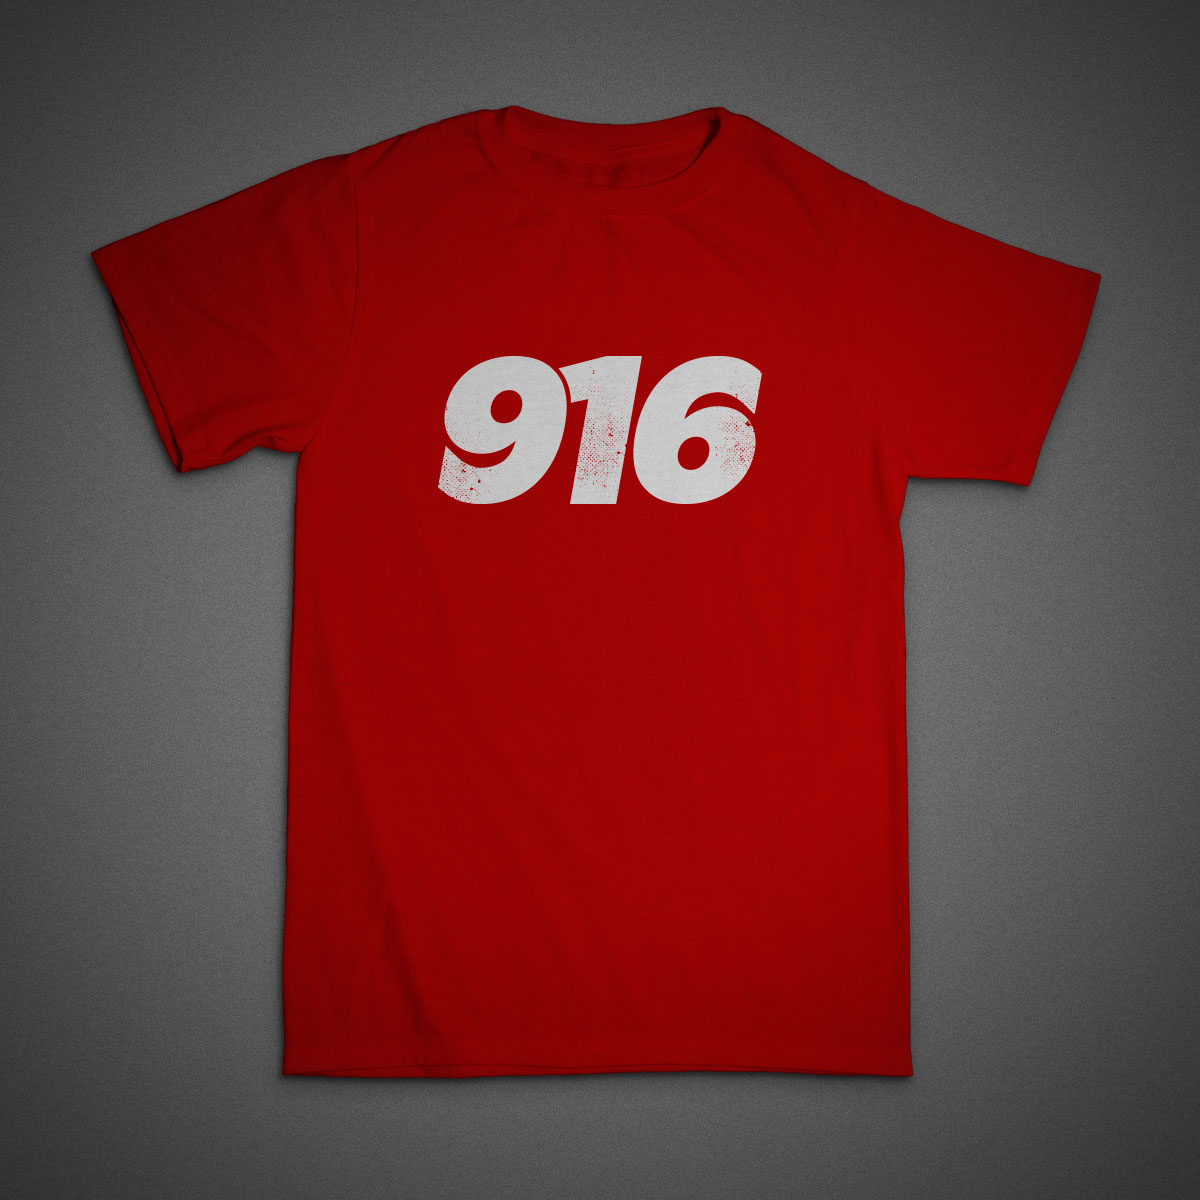 916 Red